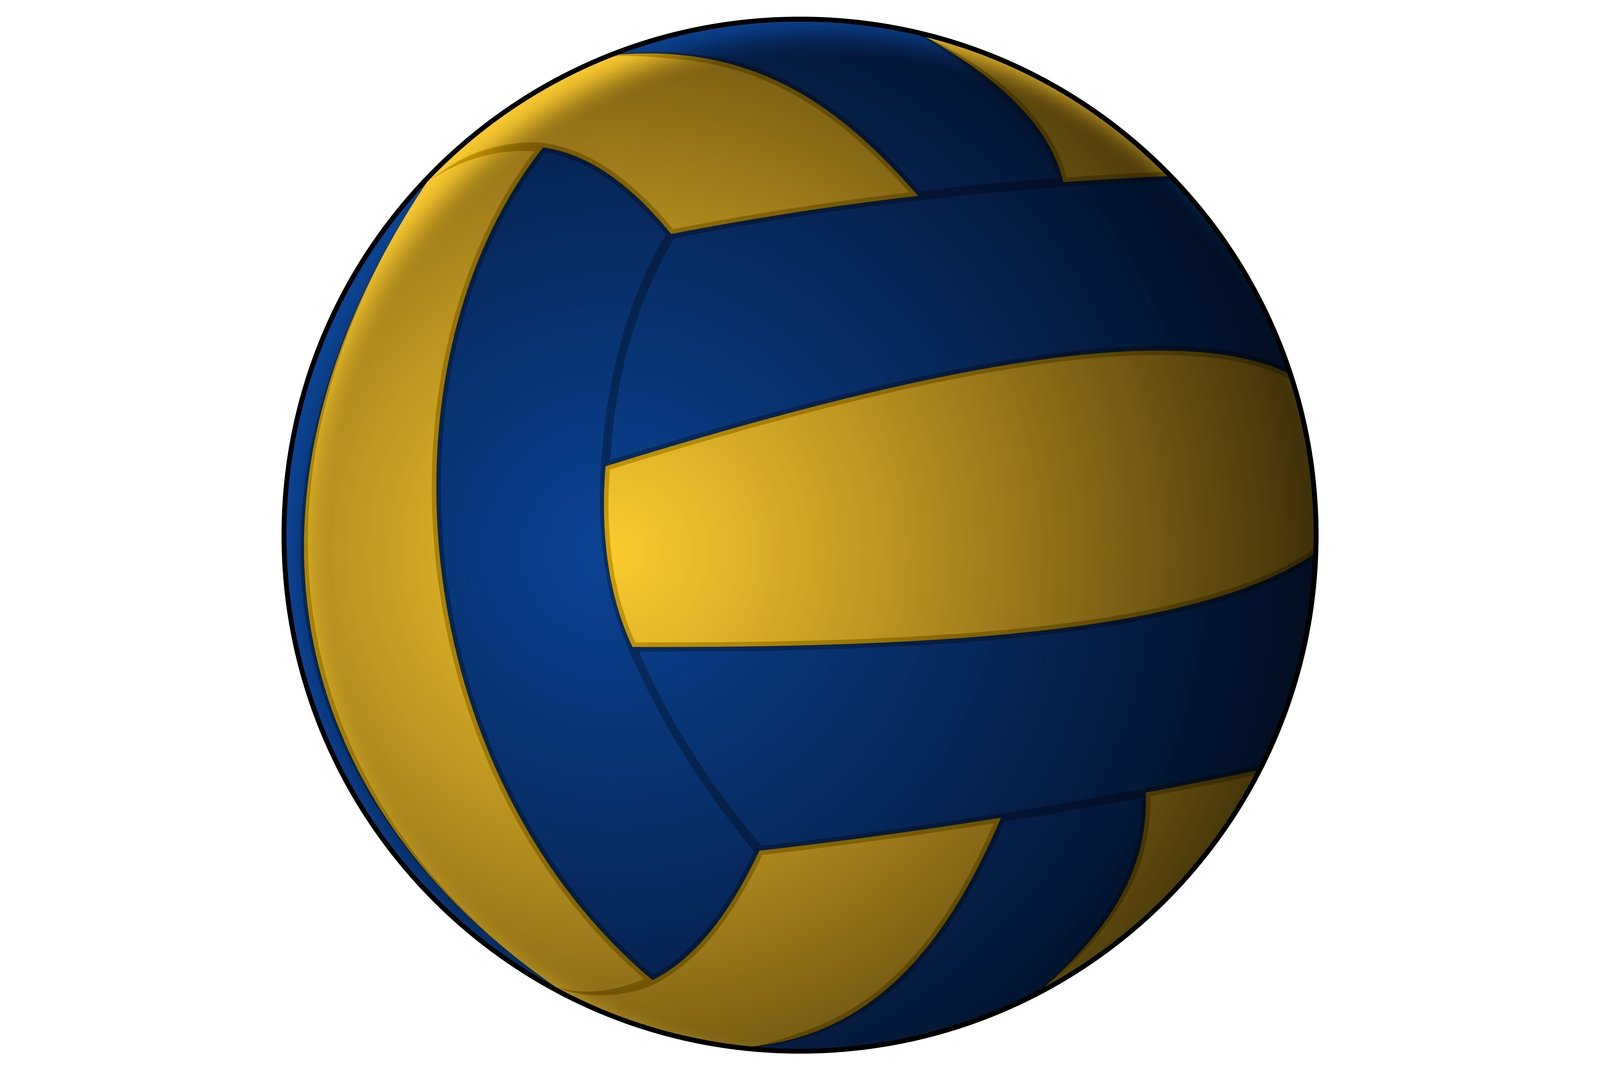 Background Abstract Volleyball Blue Yellow Ball Frame: Free Vector Volleyball 1 Stock Photo